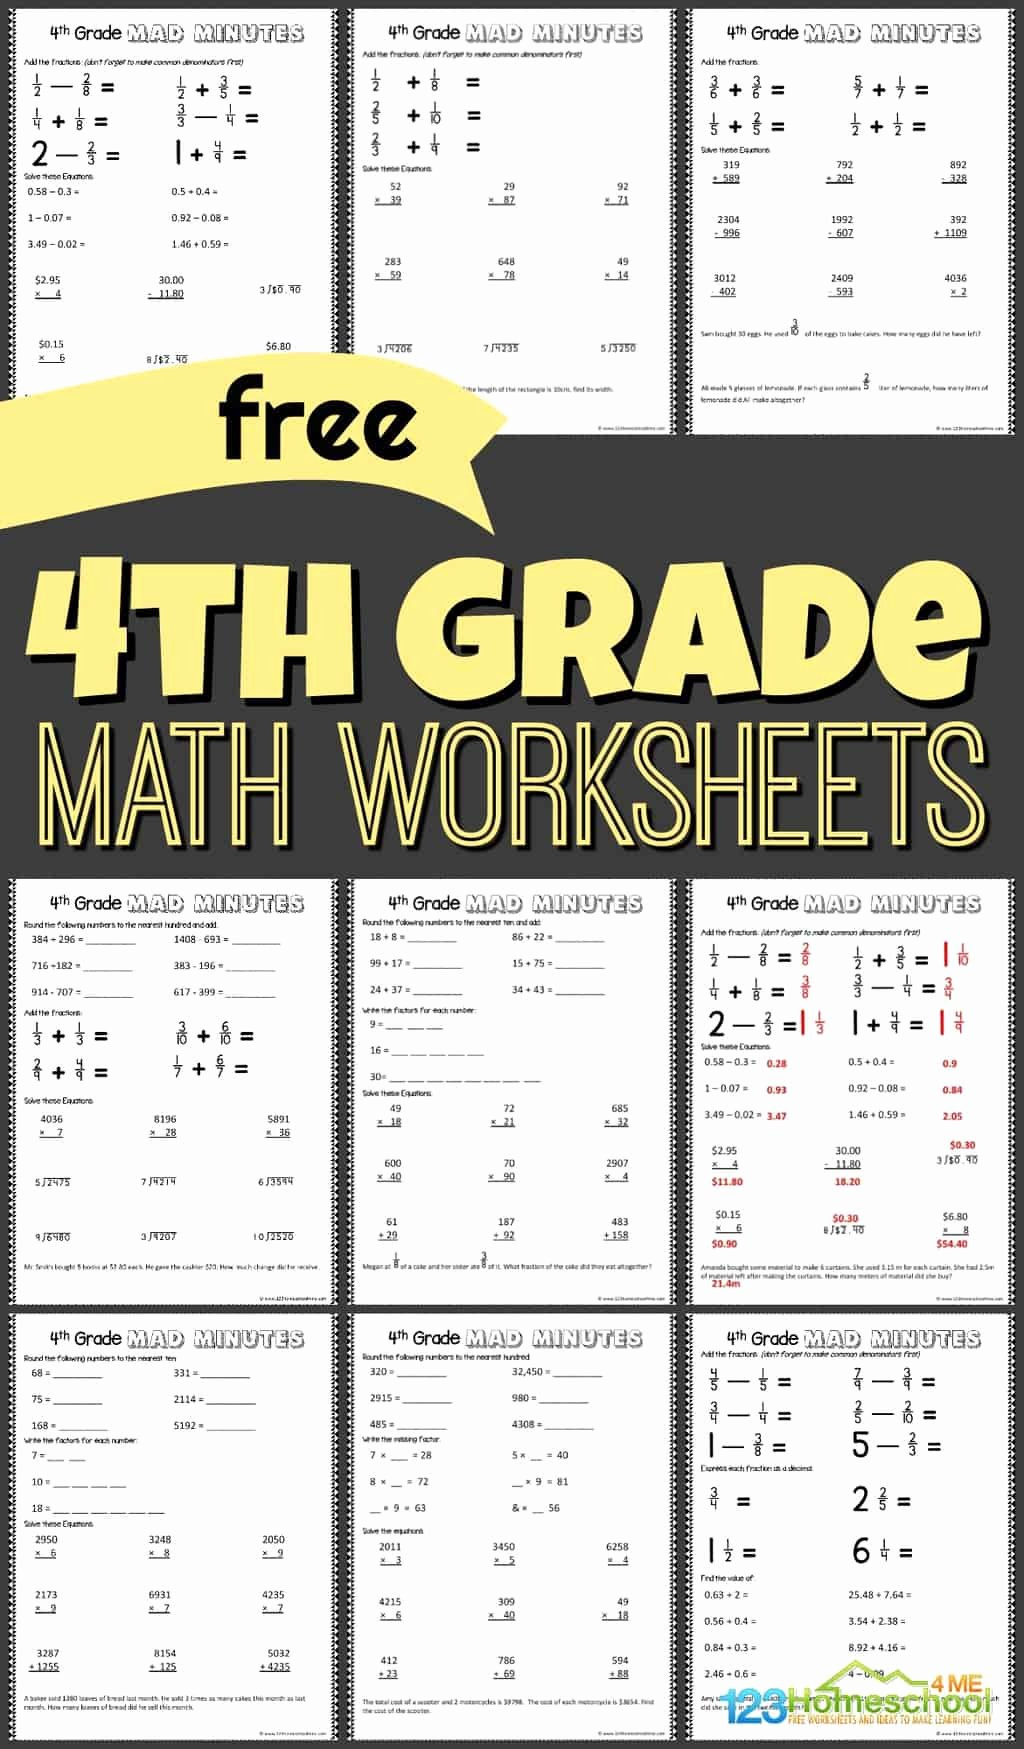 4th Grade Multiplication Worksheets Inspirational Free 4th Grade Math Worksheets